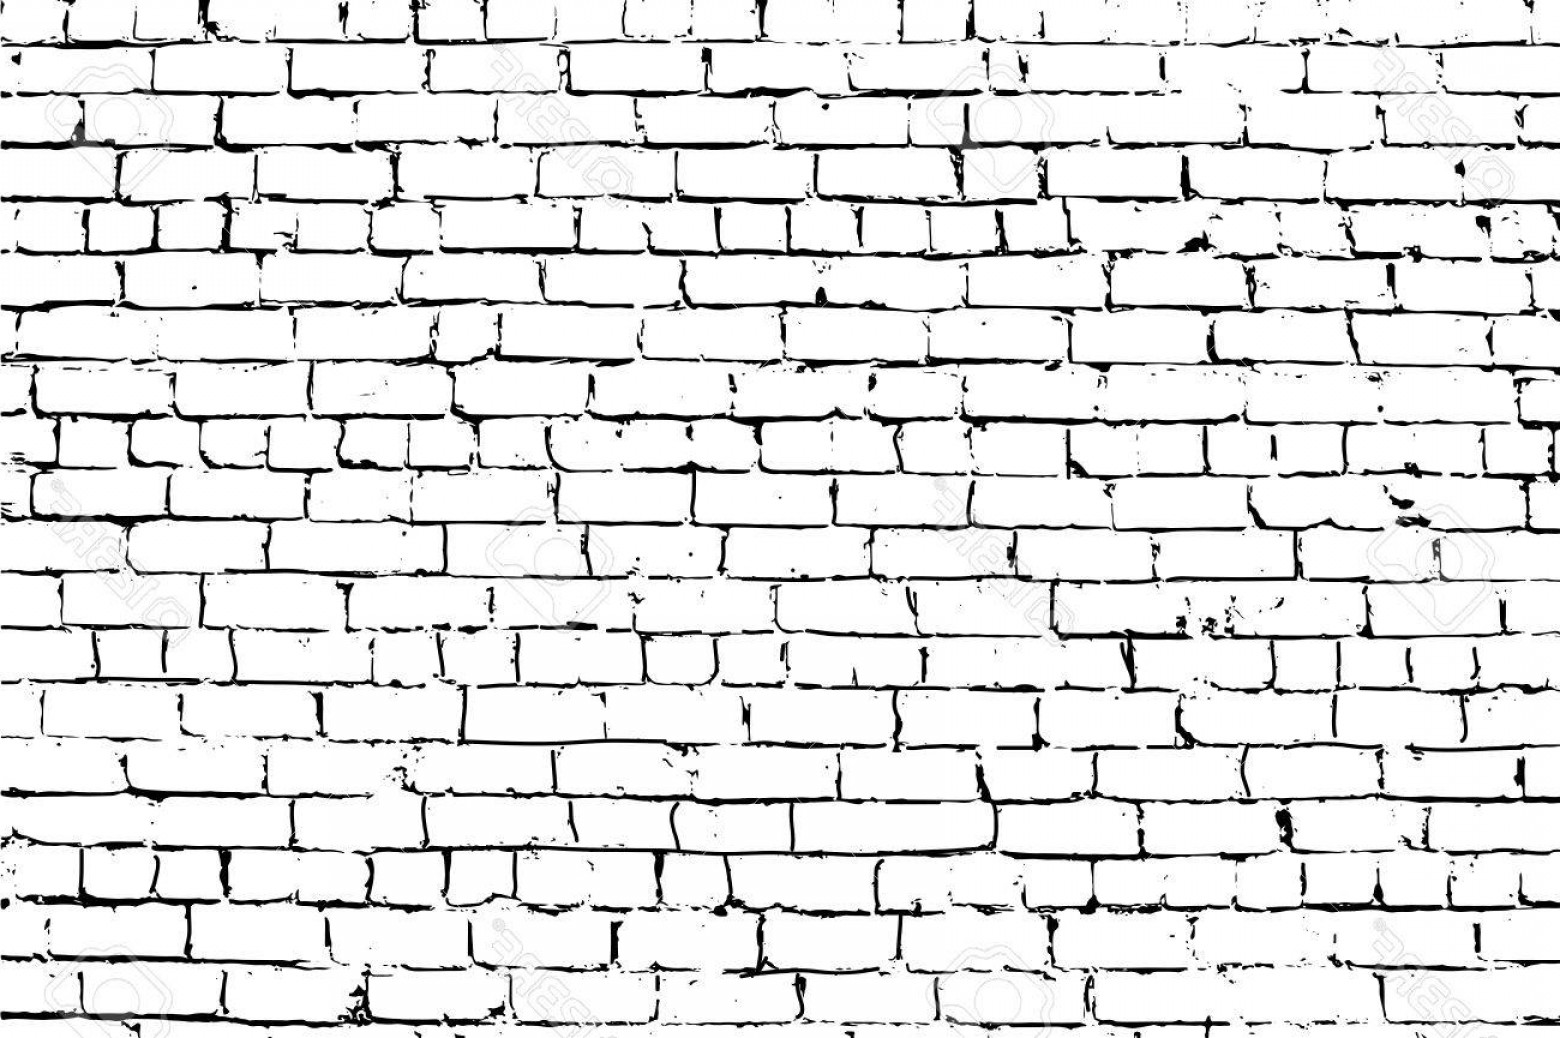 Wall Background Vector: Photostock Vector White Rust Aged Grungy Brick Wall Vector Background